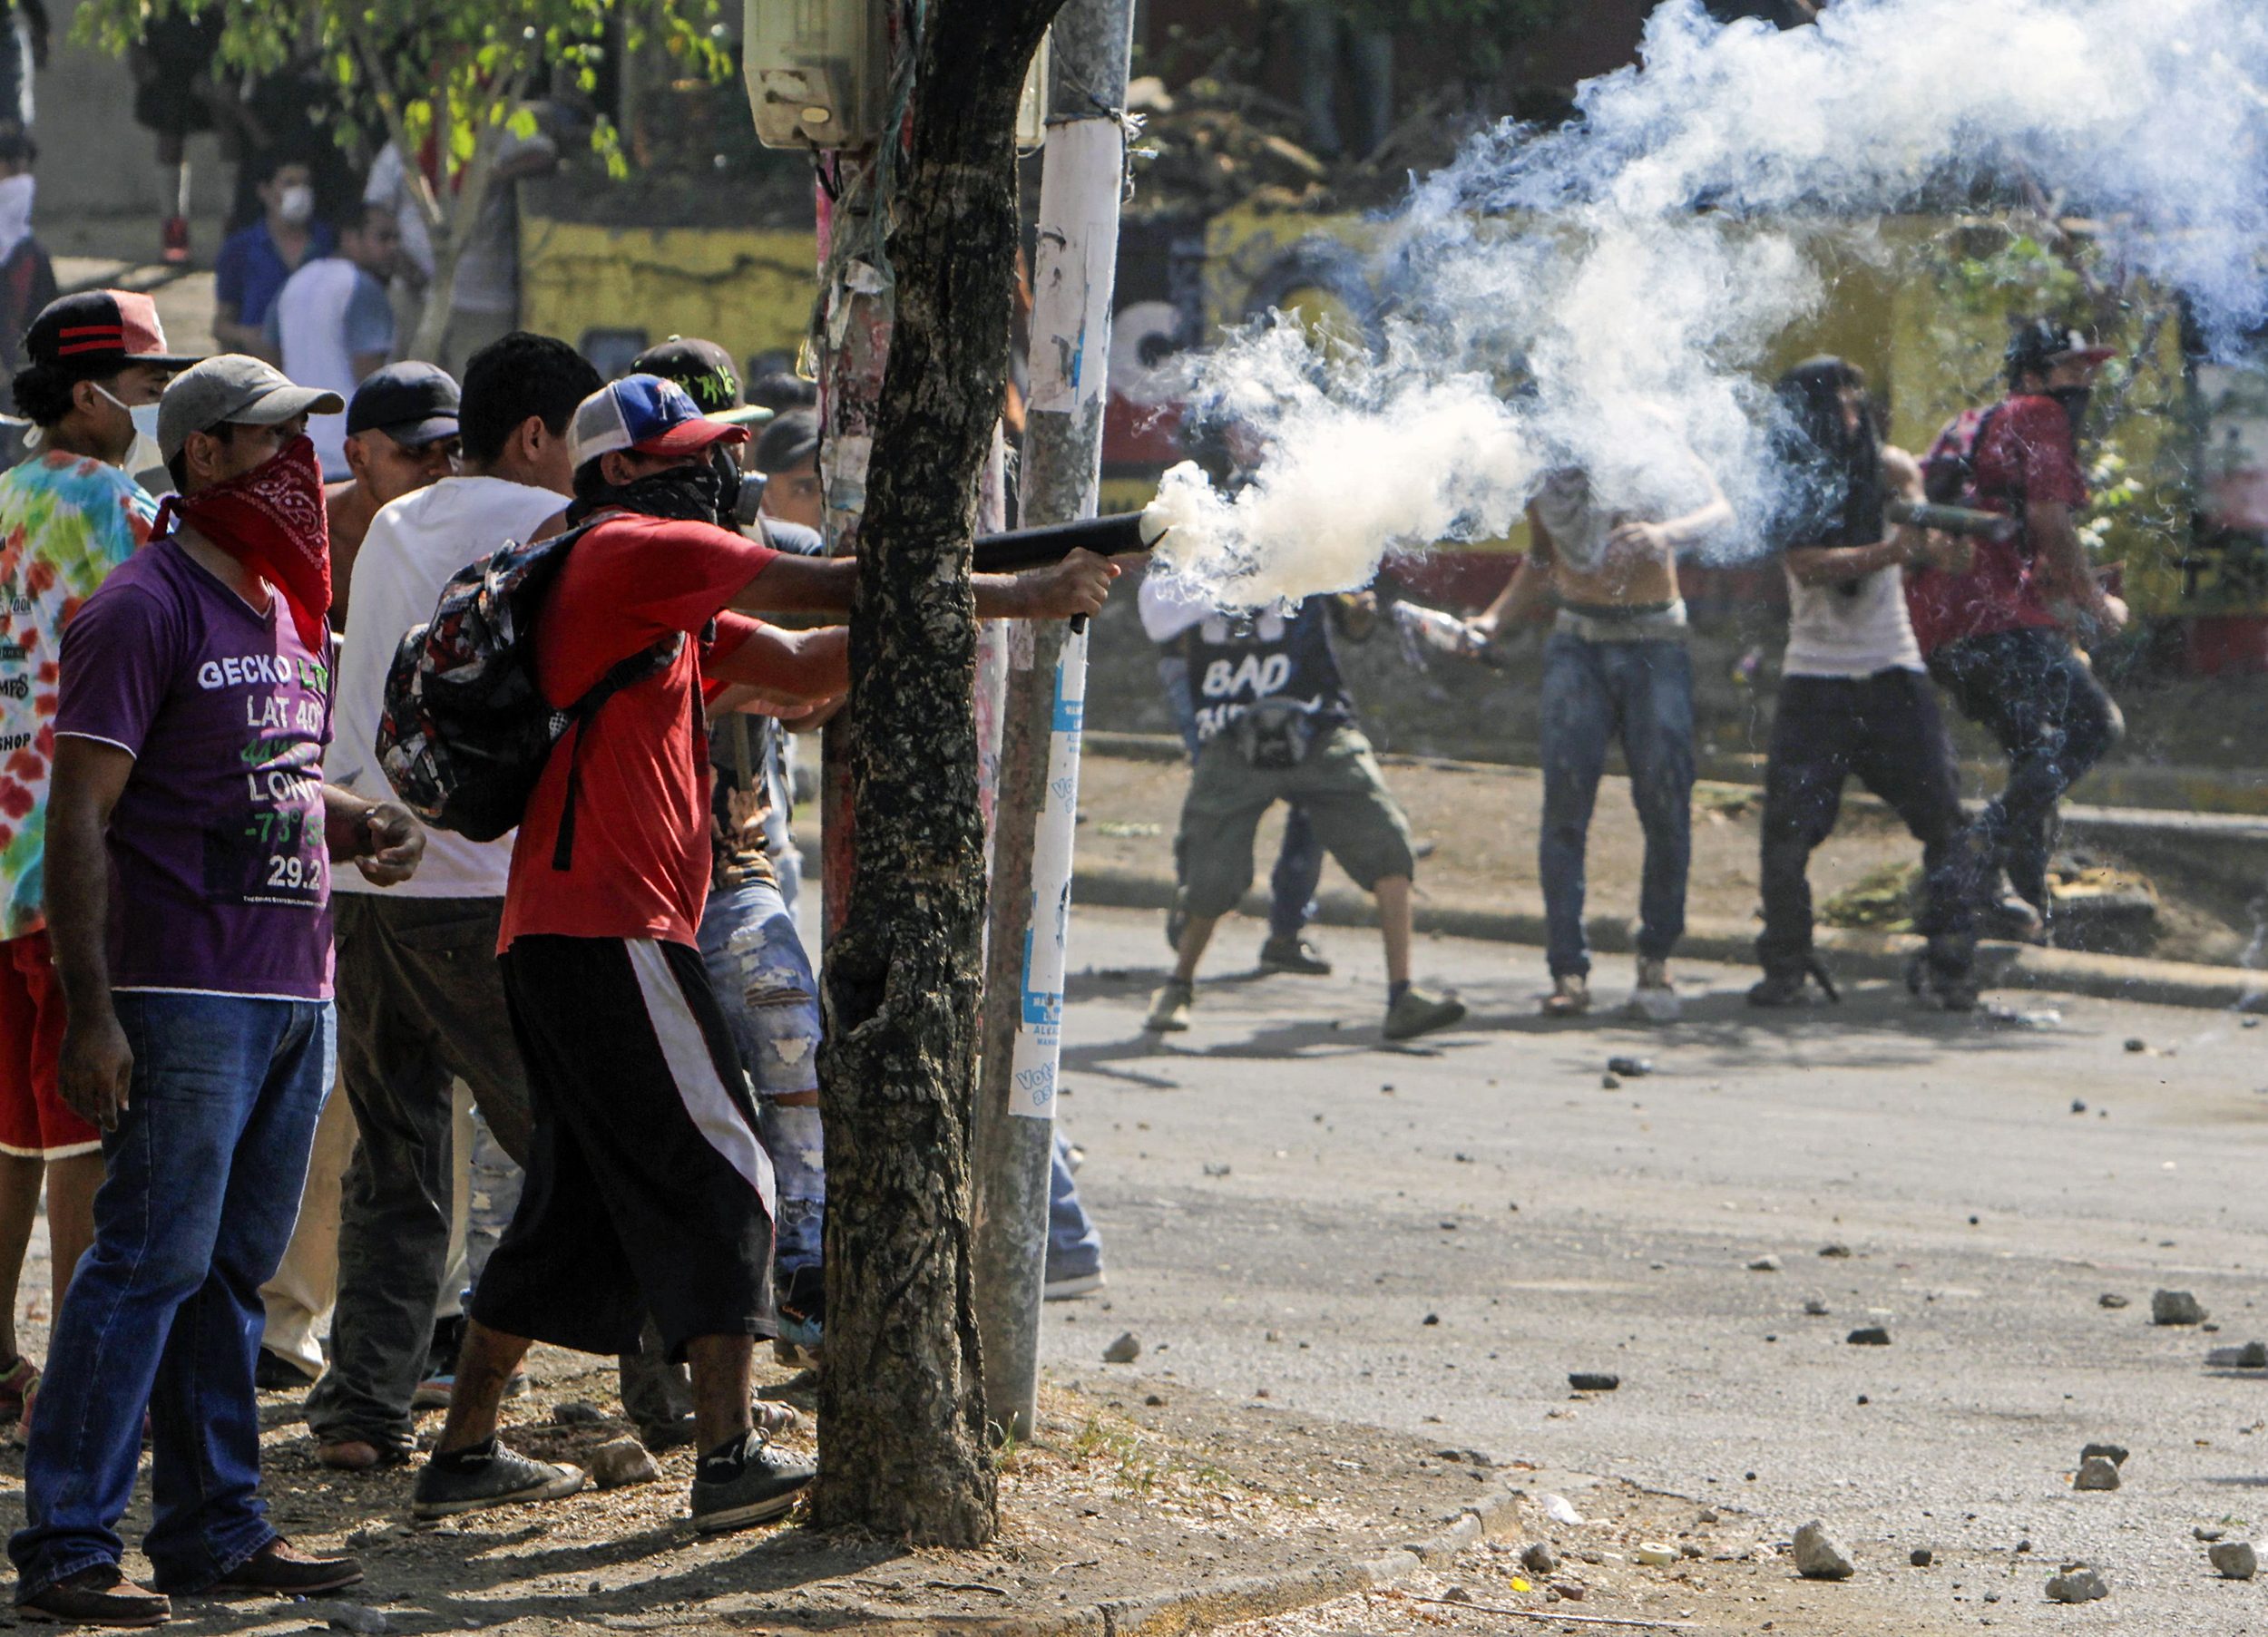 More-than-25-dead-in-Nicaragua-after-unrest-over-social-security-changes